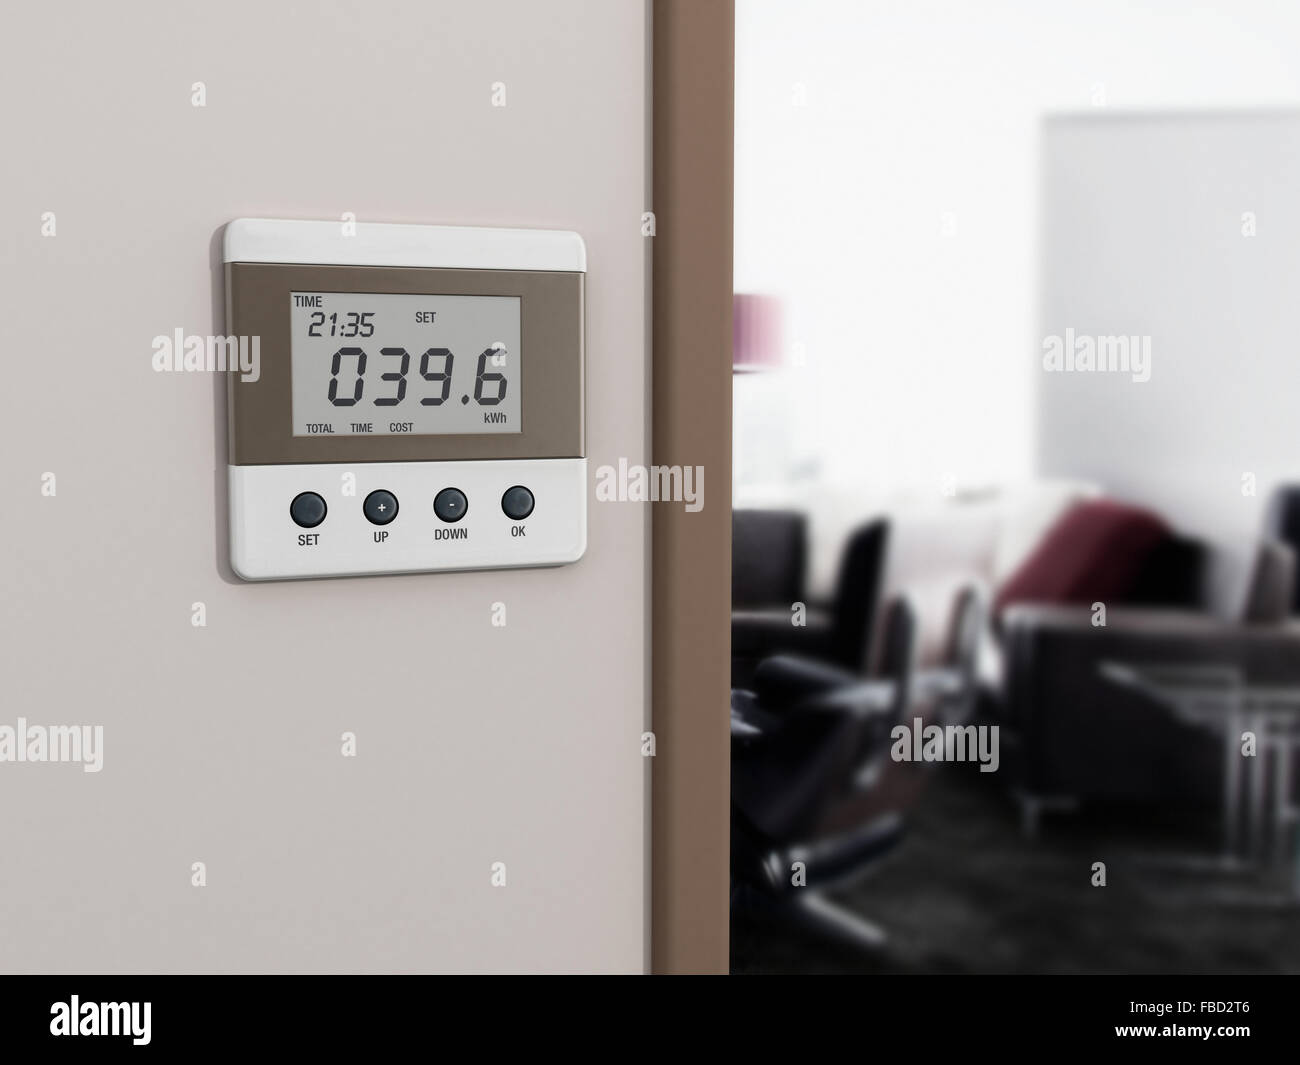 Wall mounted energy meter beside the room entrance. - Stock Image